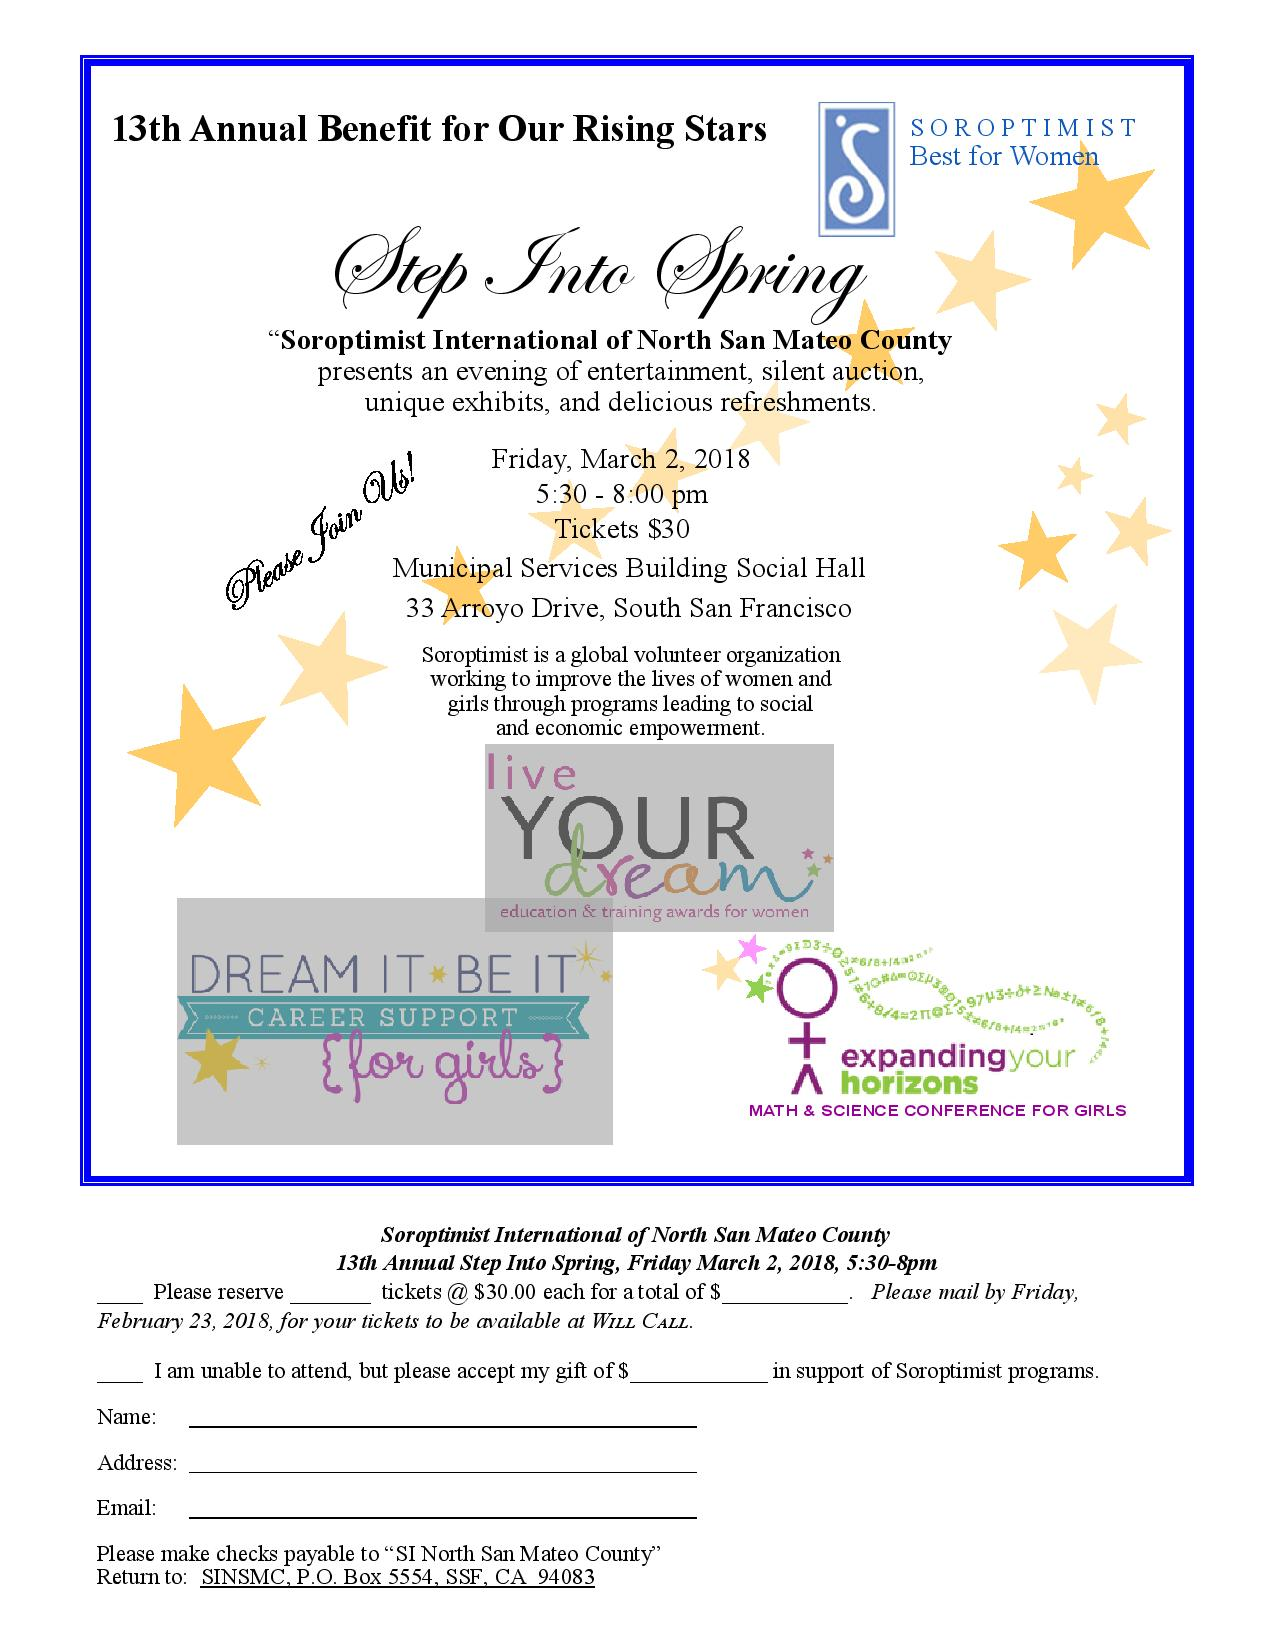 Soroptimist International of North San Mateo County Invite Public to 13th Annual STEP INTO SPRING Friday March 2nd at MSB